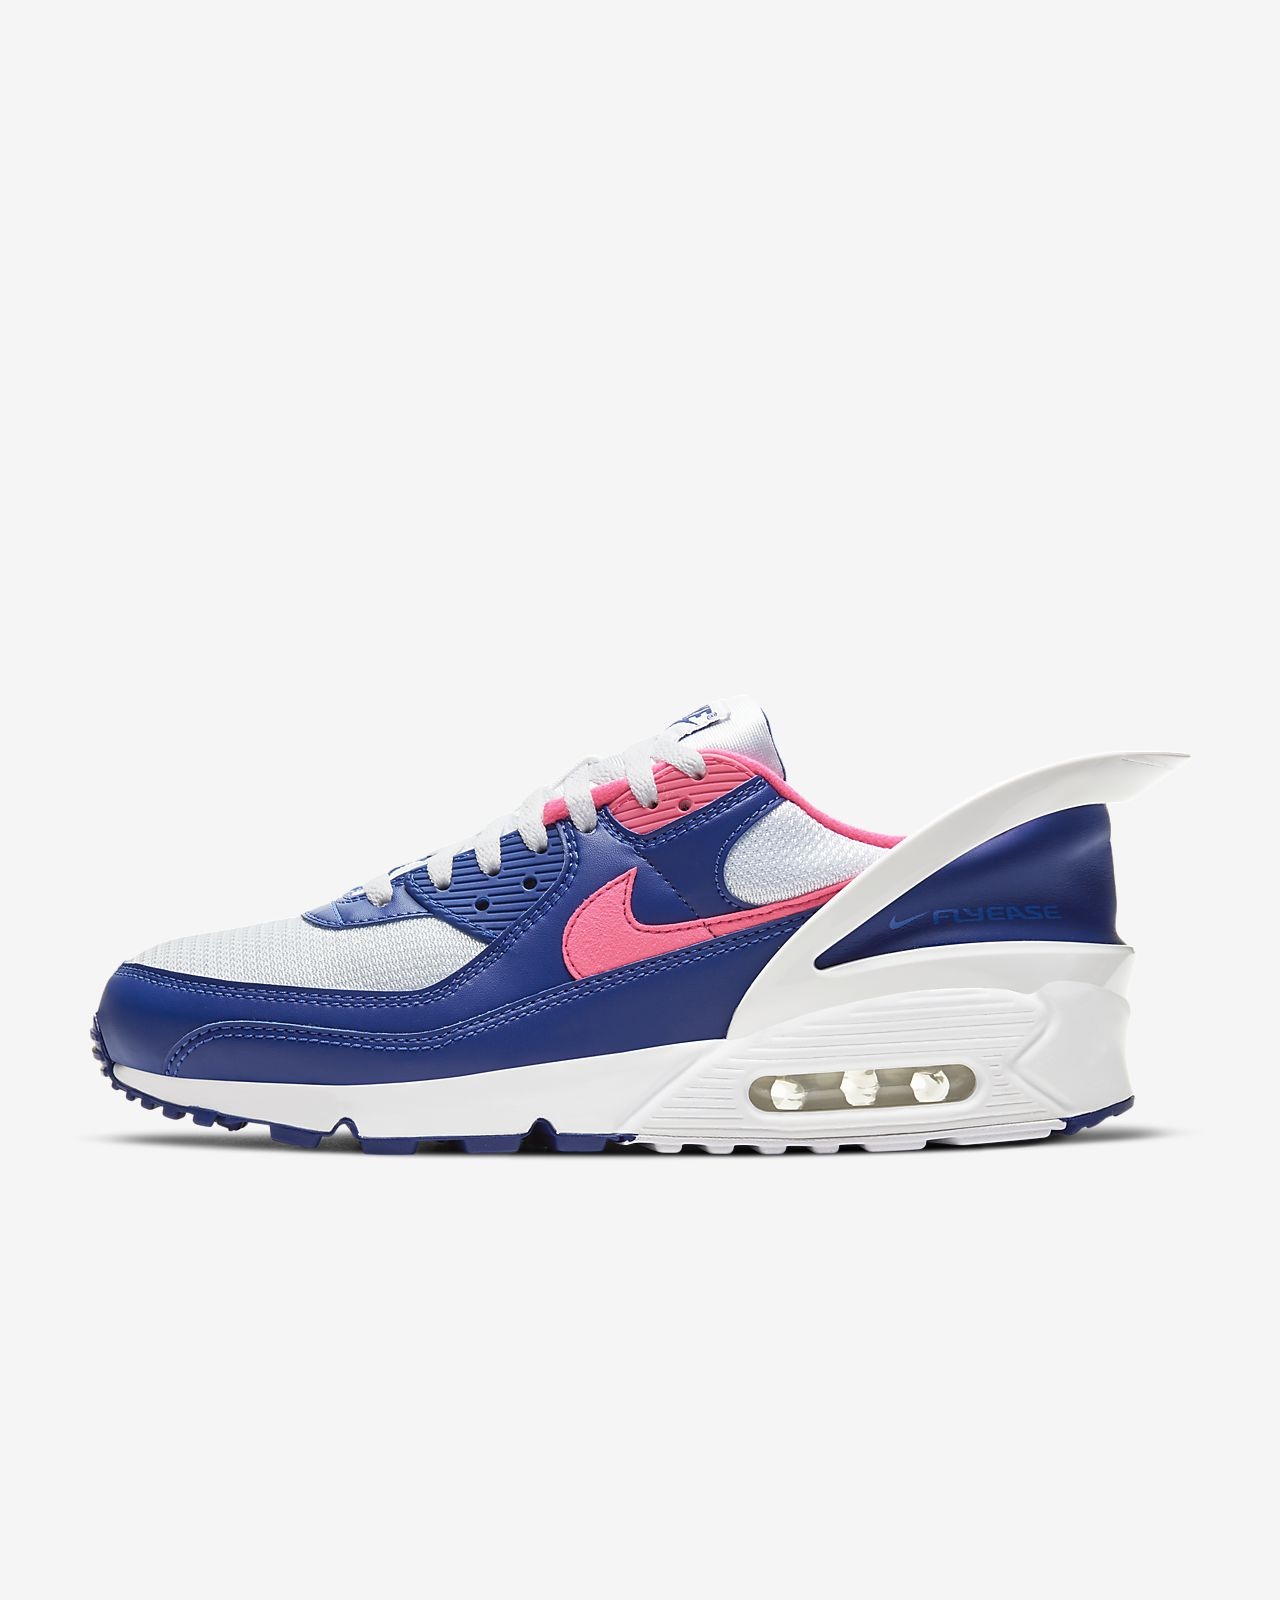 classic style new arrivals top fashion Chaussure Nike Air Max 90 FlyEase. Nike MA